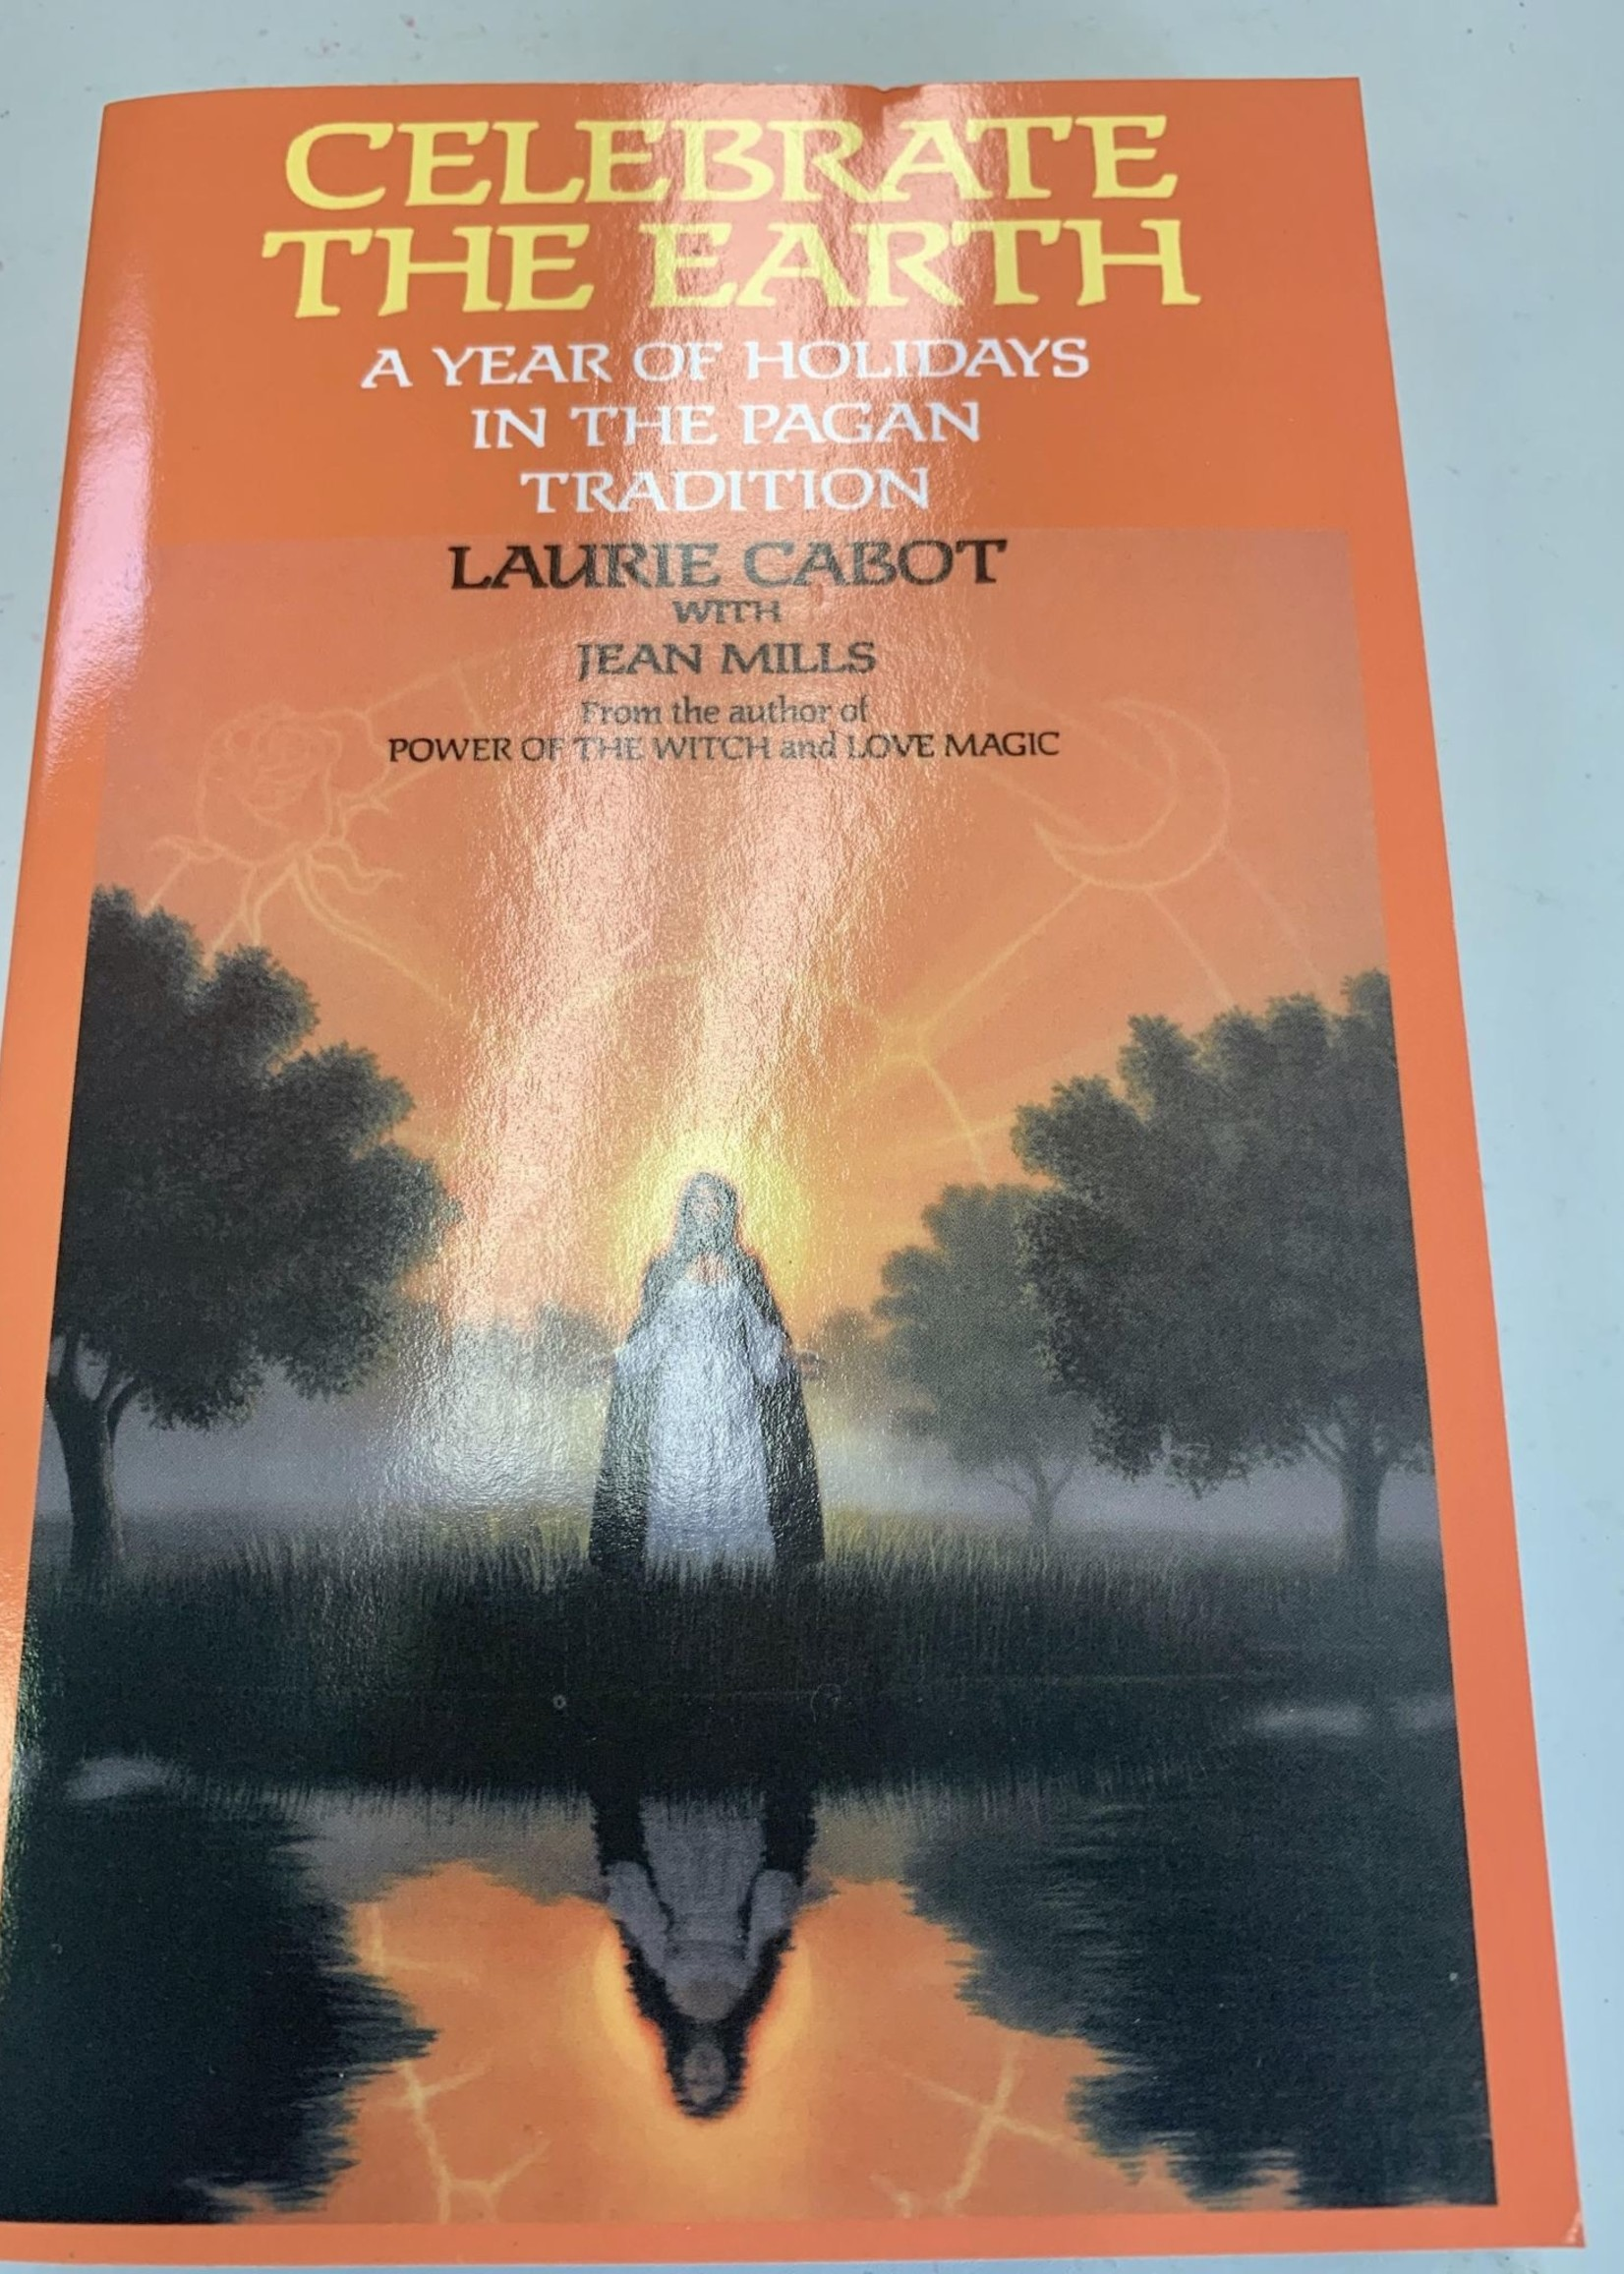 Celebrate the Earth A YEAR OF HOLIDAYS IN THE PAGAN TRADITION - LAURIE CABOT